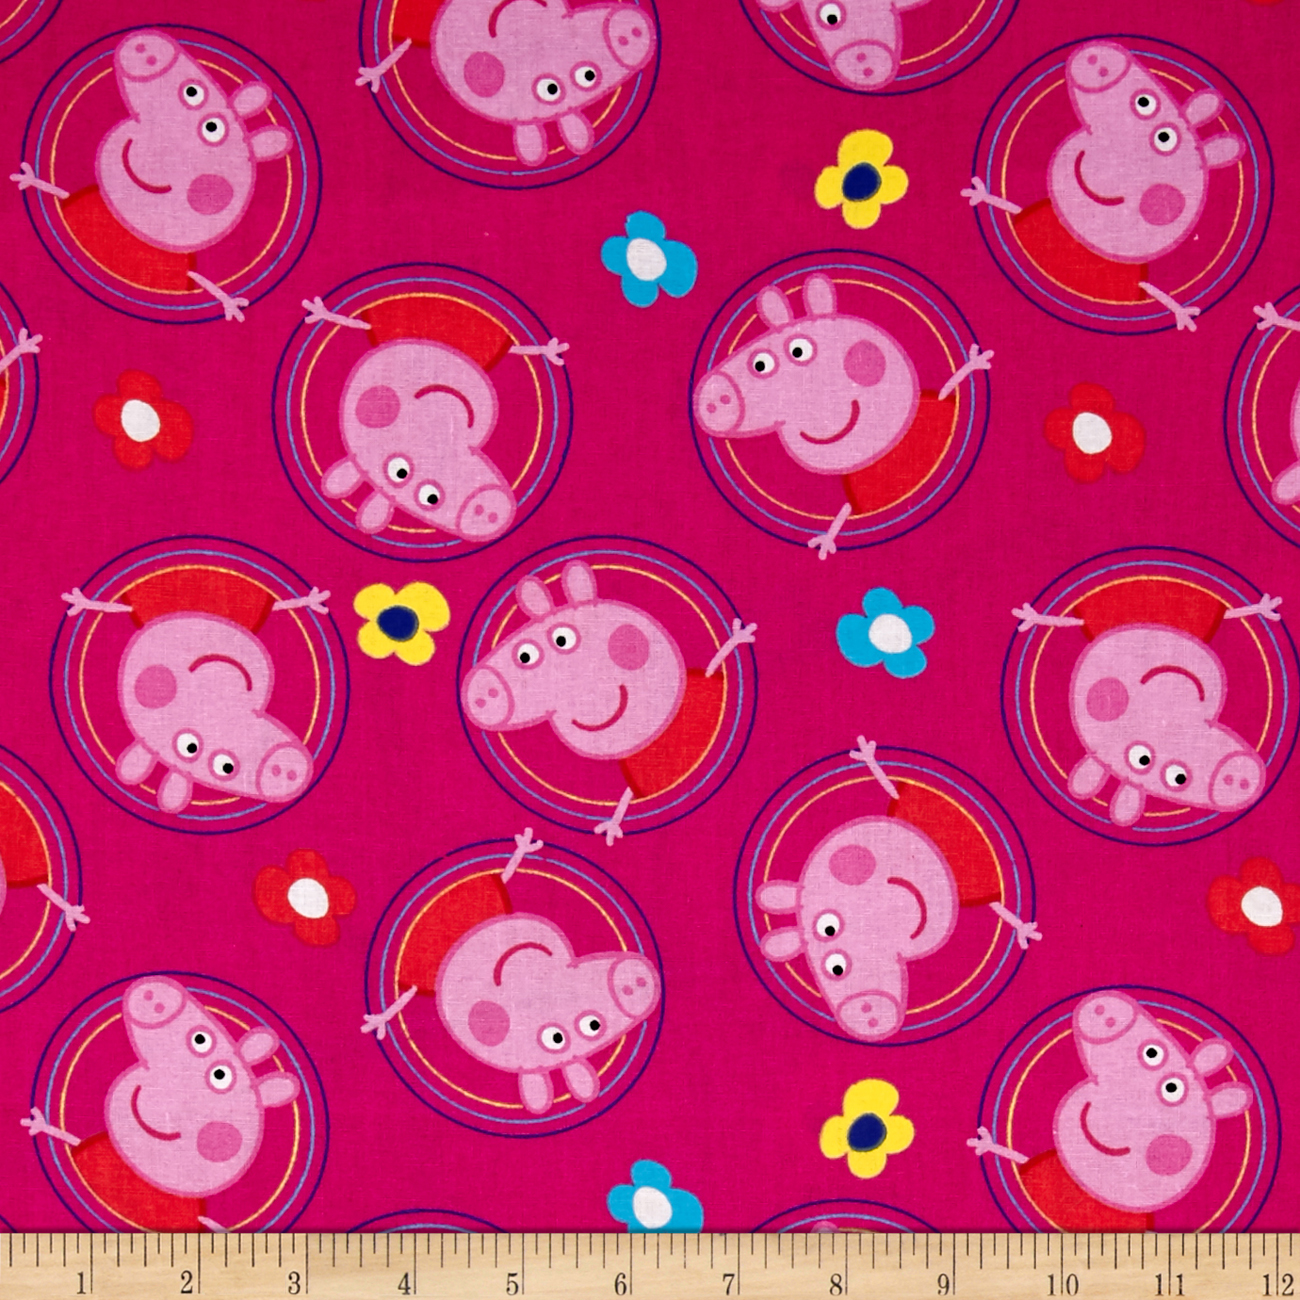 Peppa Pig Badges Pink Fabric by E. E. Schenck in USA